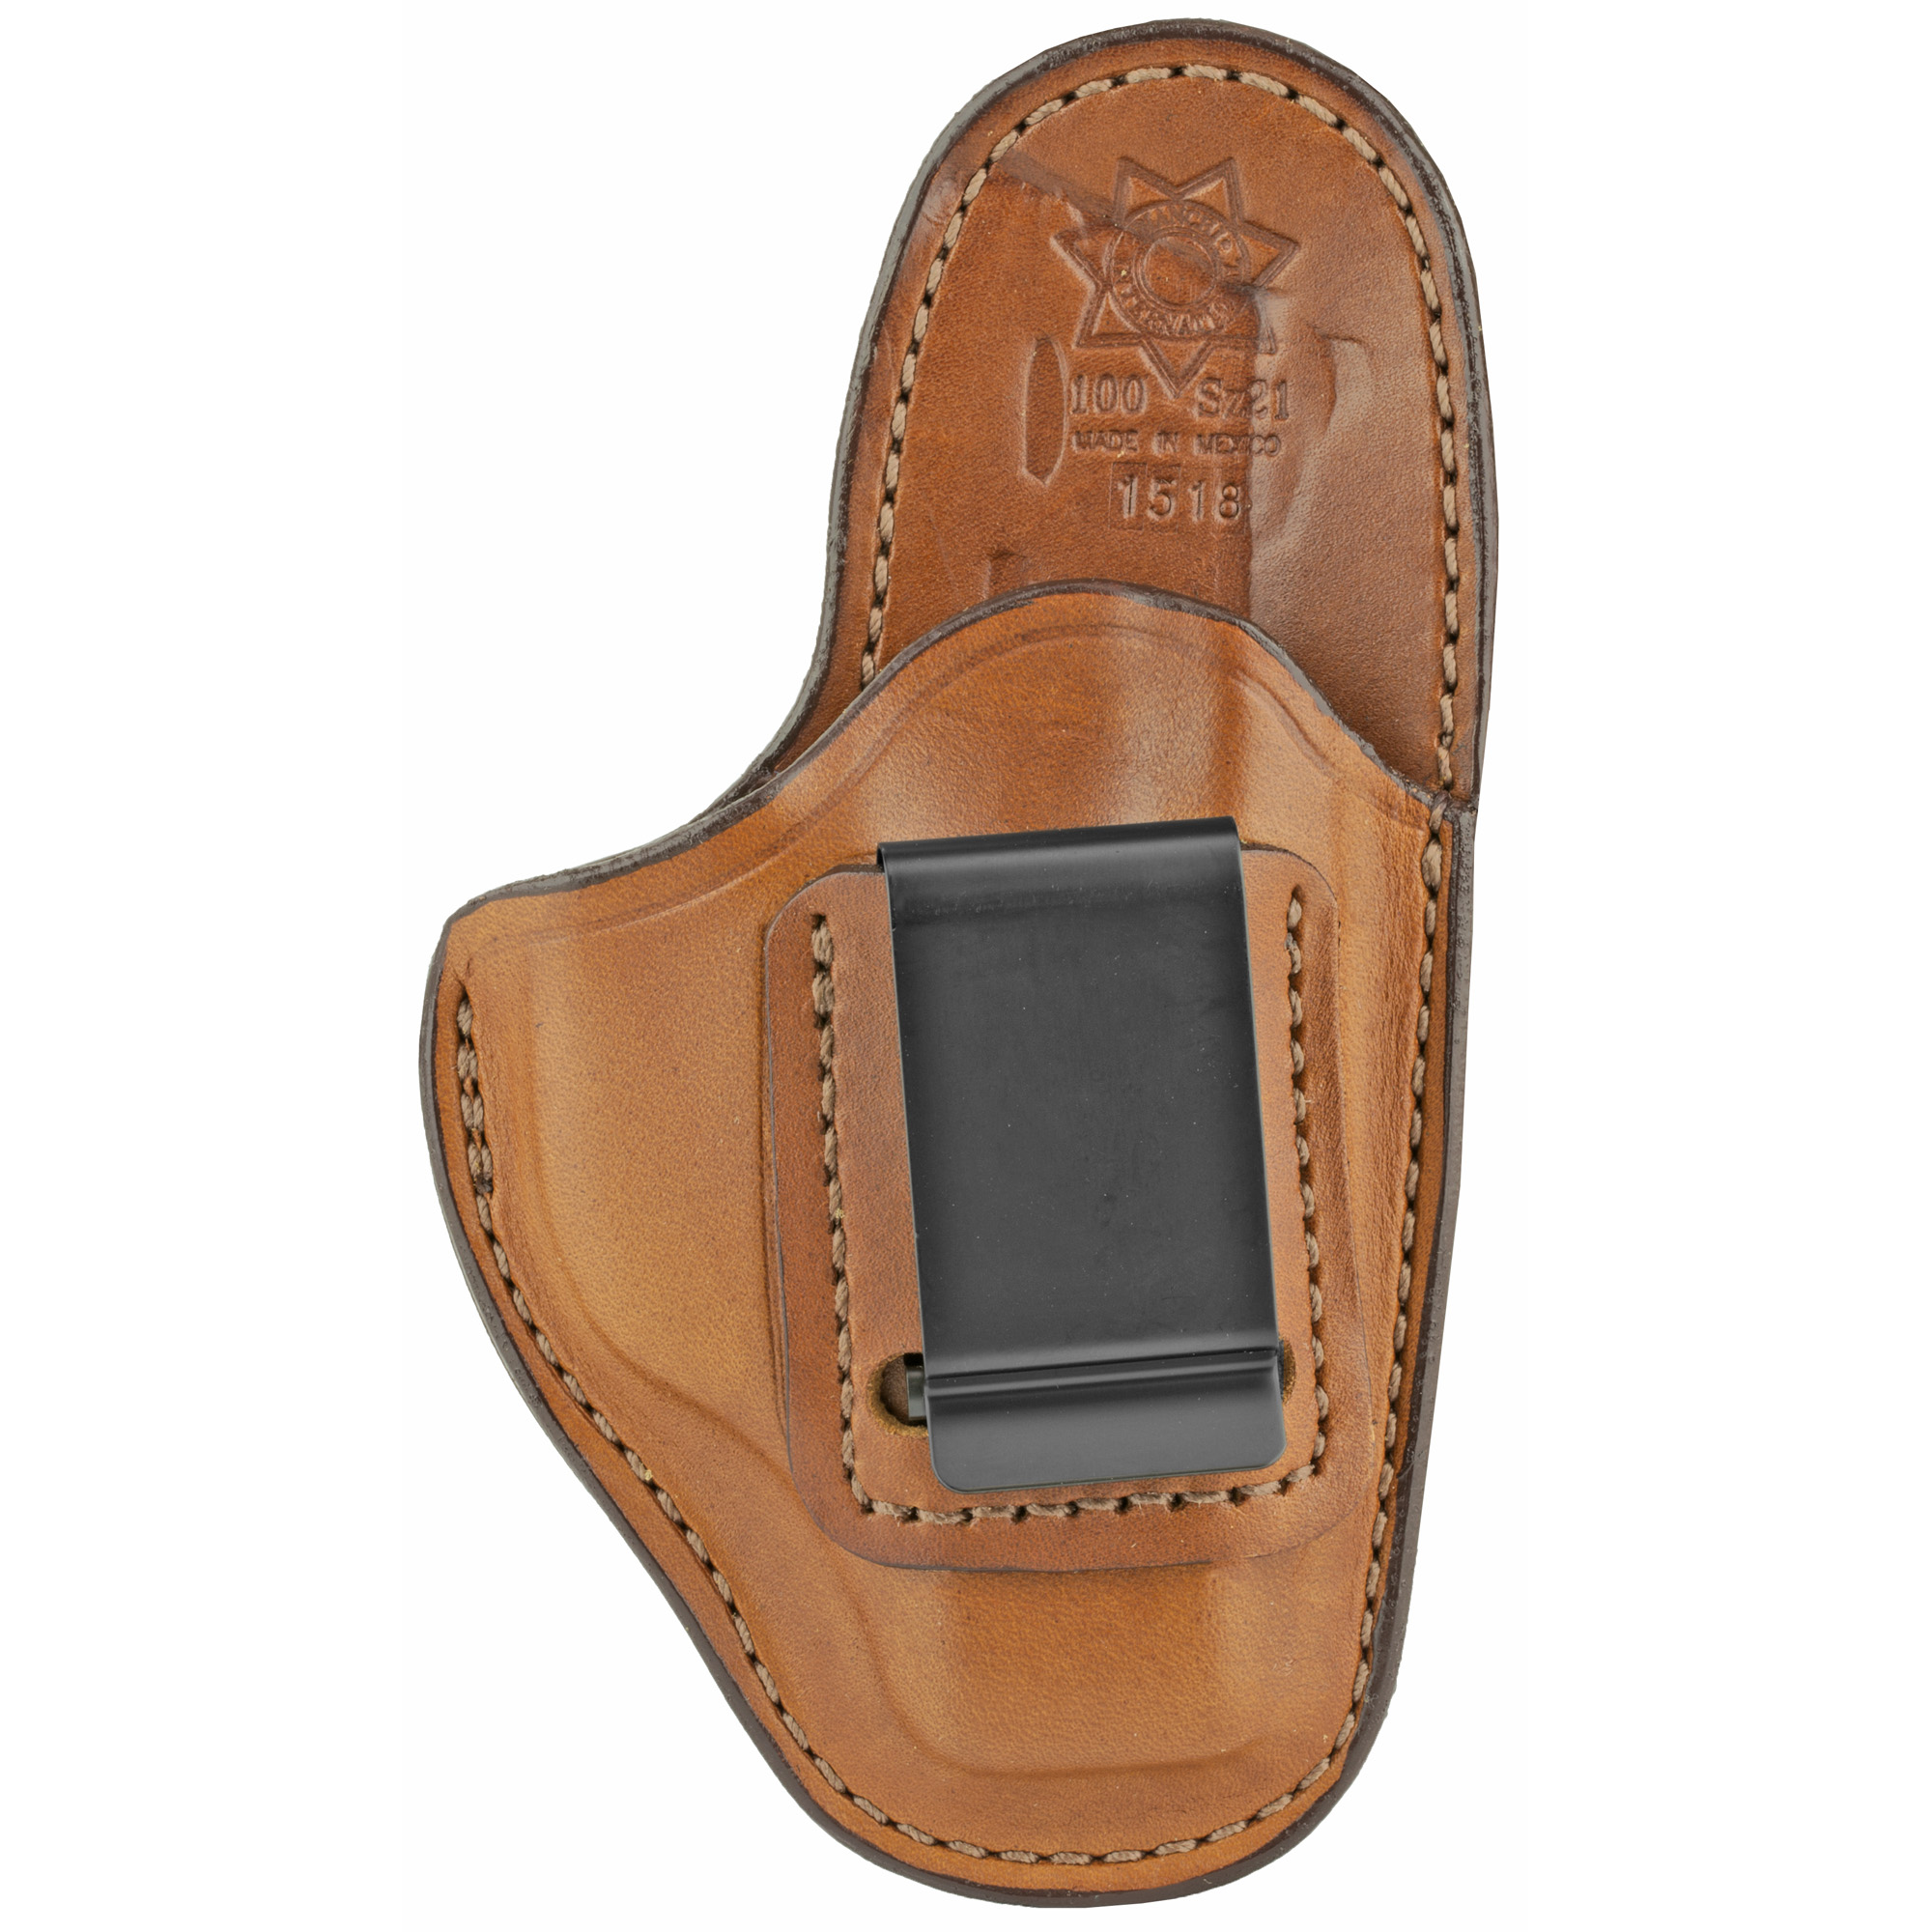 This leather inside the waistband design features a high back that provides a shield between the body and the sharp edges of the pistol for comfort and to protect clothing. It is designed to ride at the optimum angle inside the waistband to allow for a proper firing grip. A belt clip securely anchors the holster to the belt.